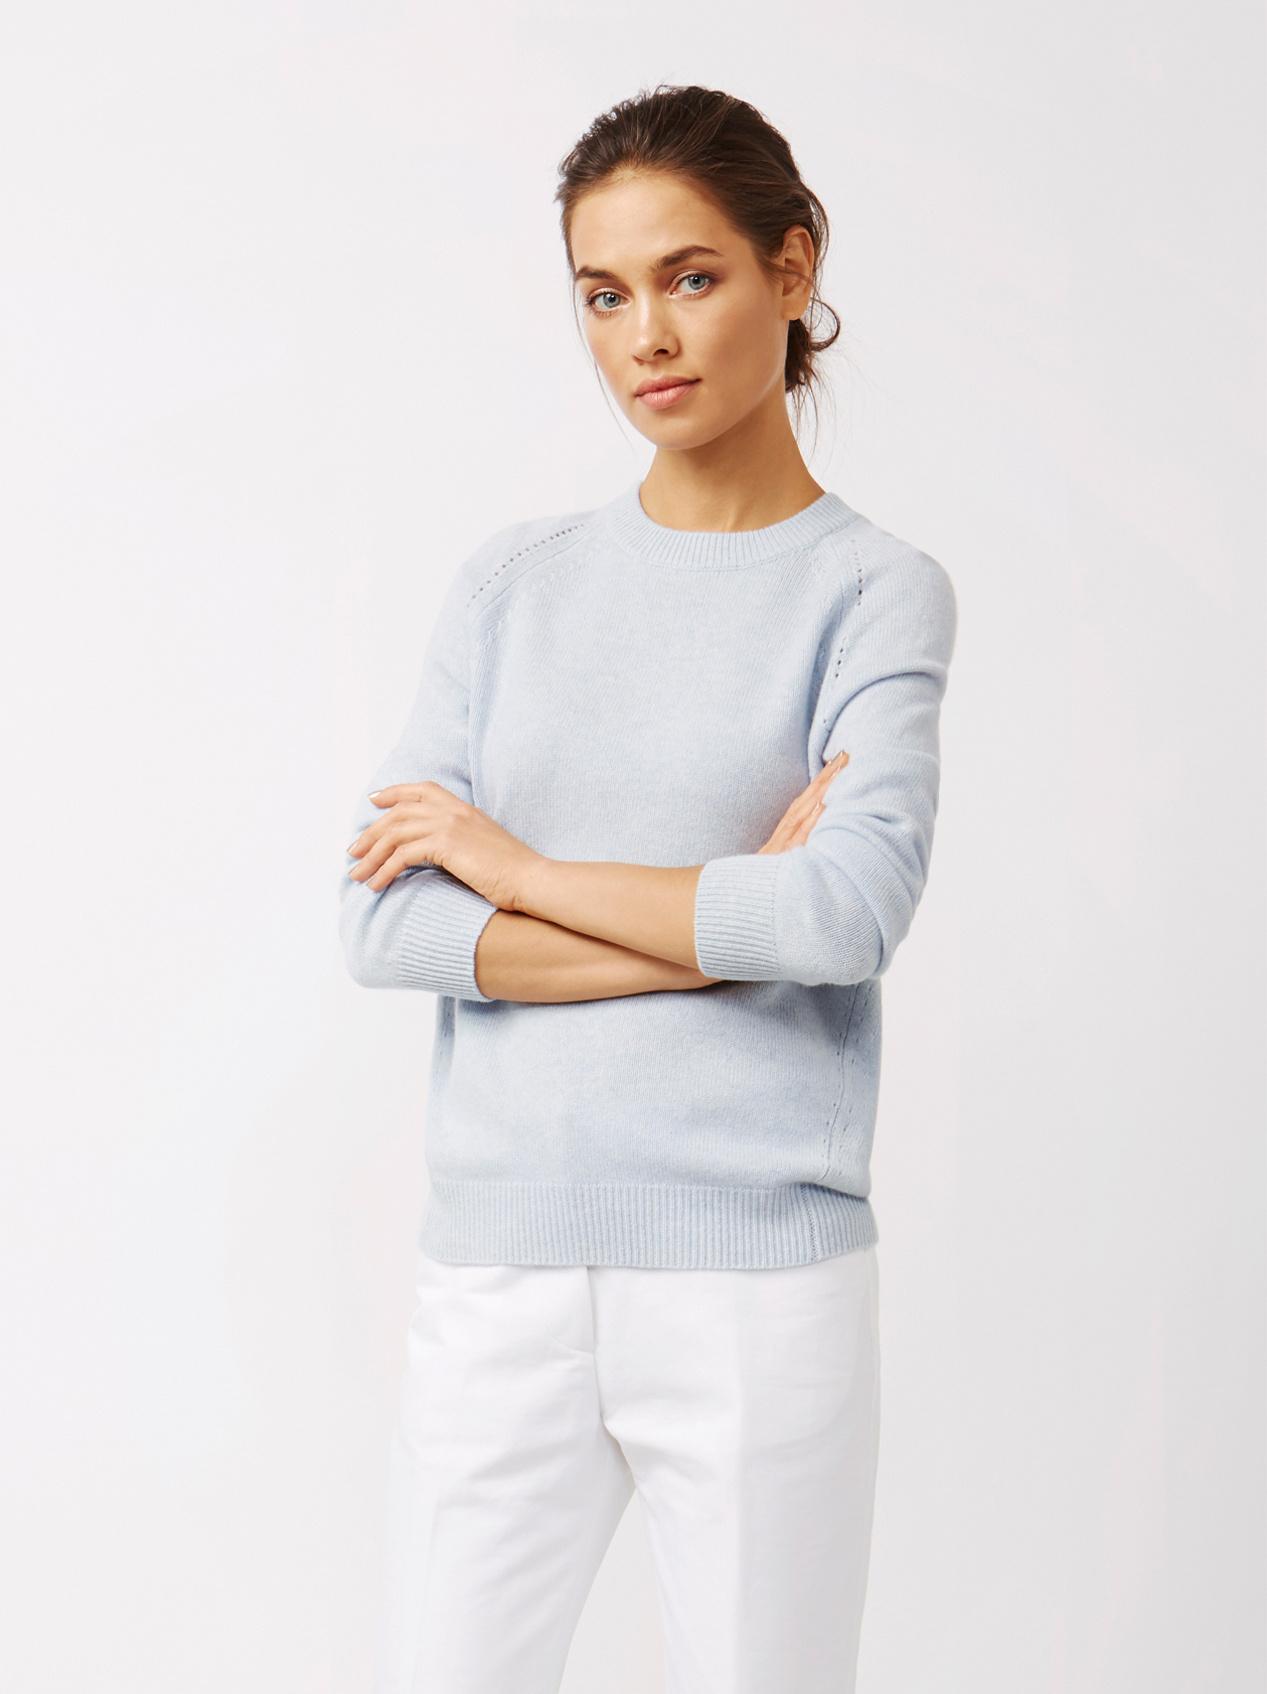 Soft Goat Women's Soft Sweater Light Blue